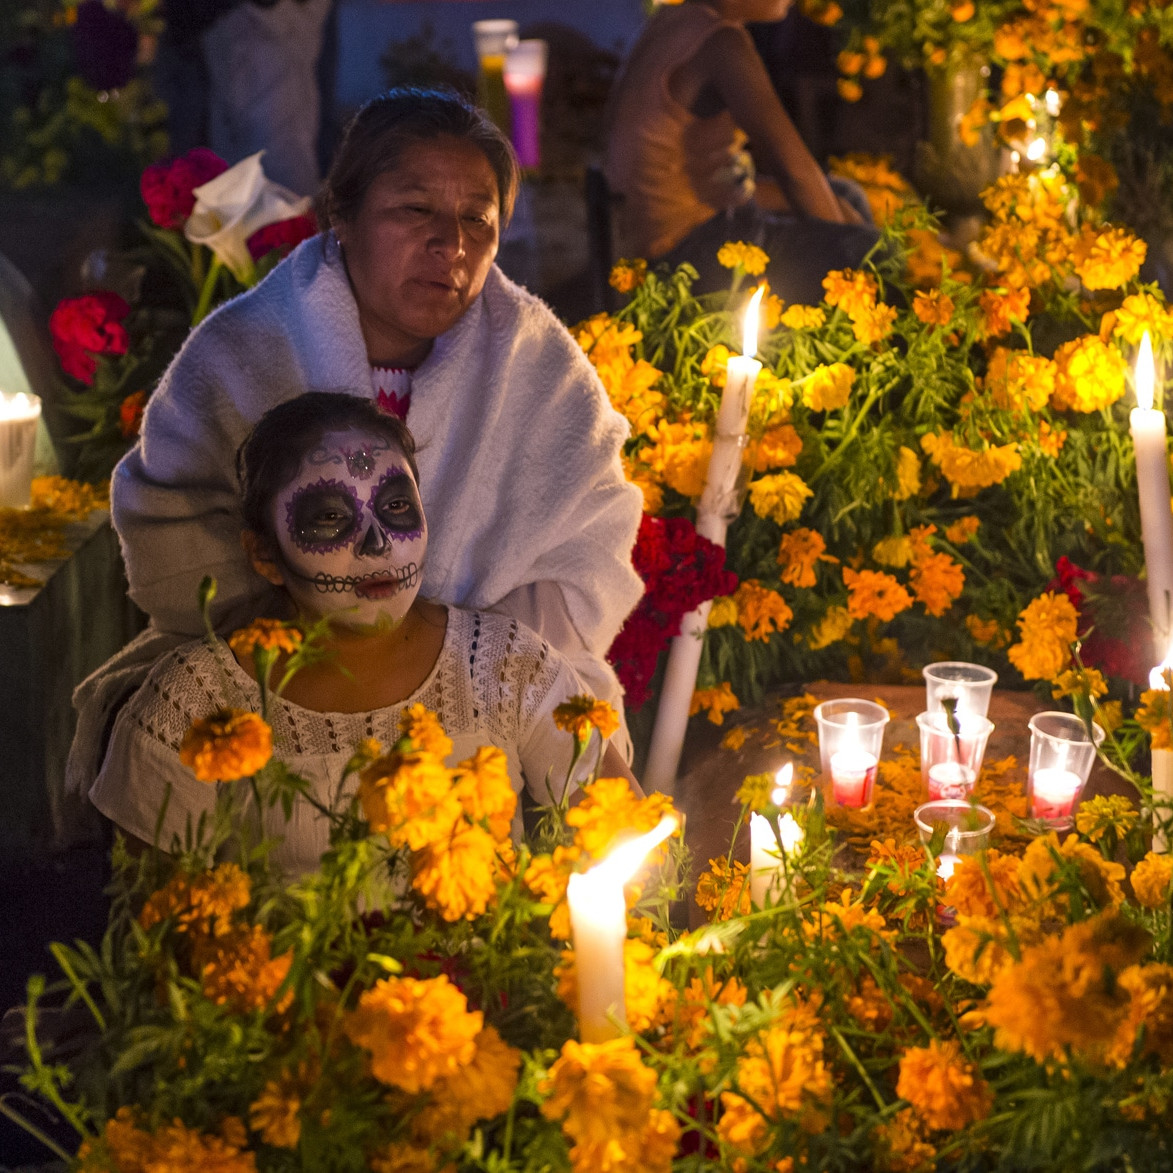 Day of the dead tradition in mexico